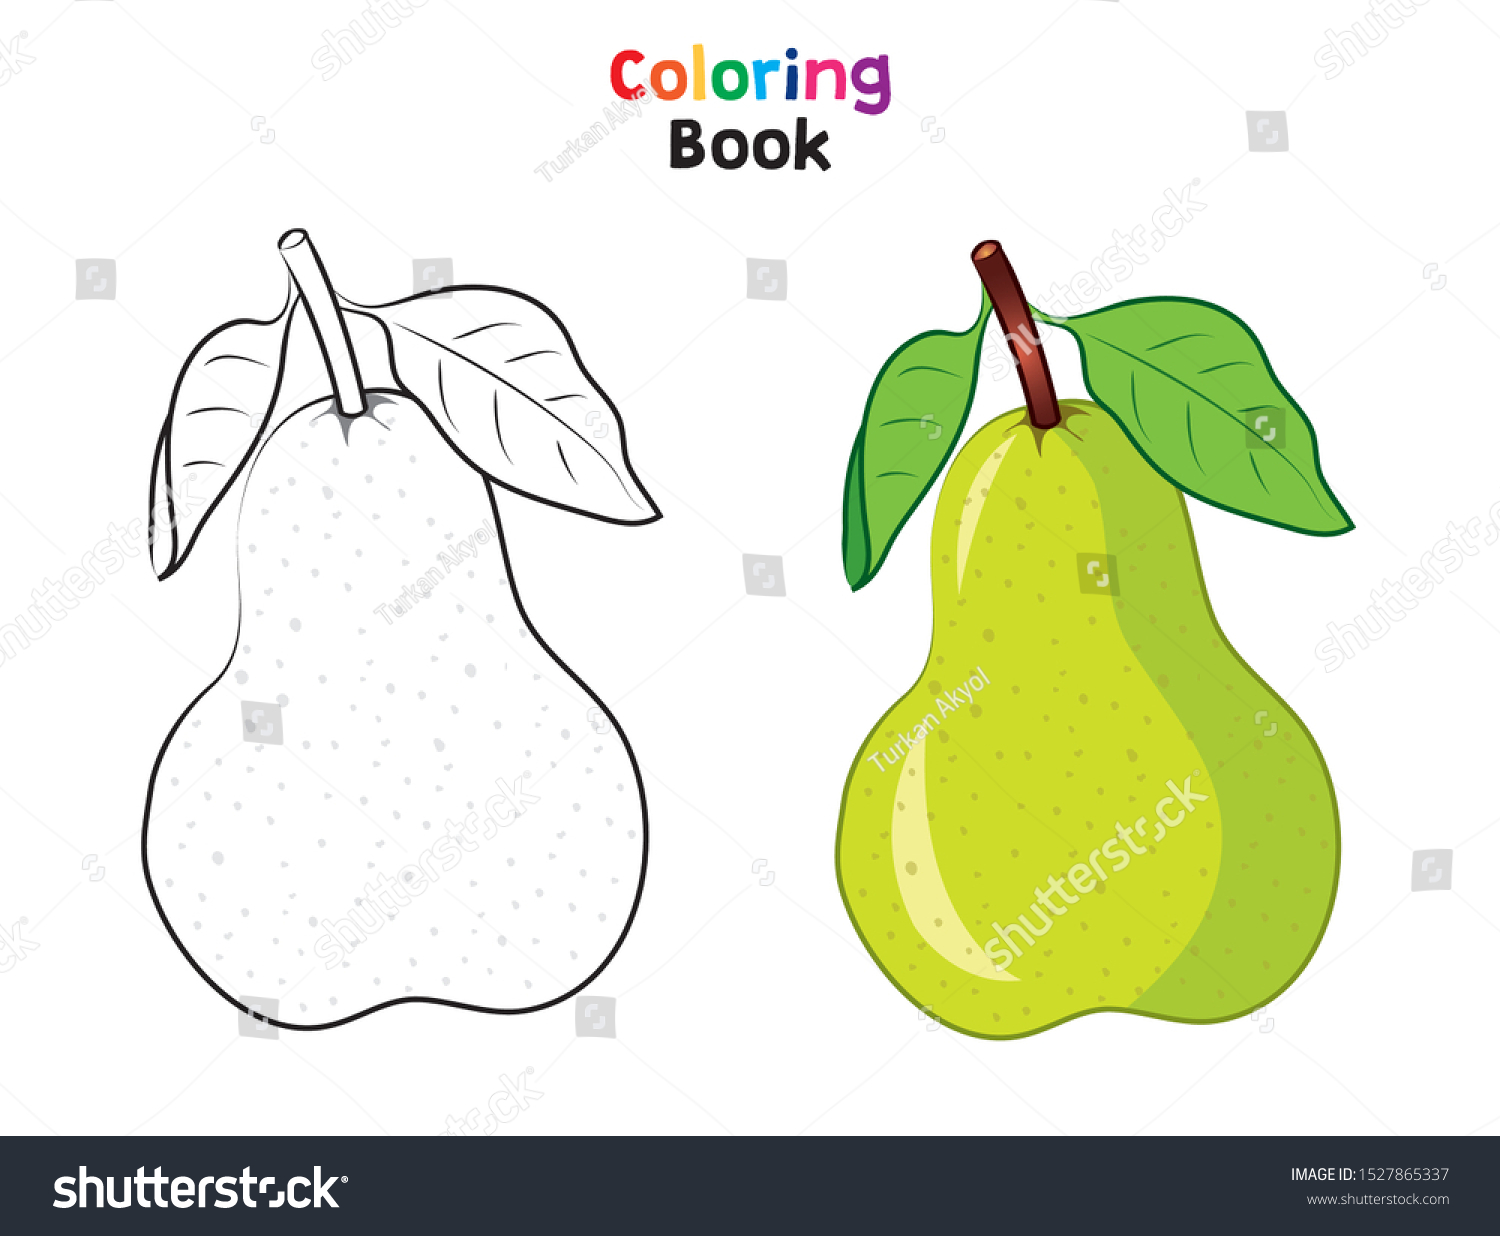 green fresh pear coloring page childrens stock vector royalty free 1527865337 shutterstock